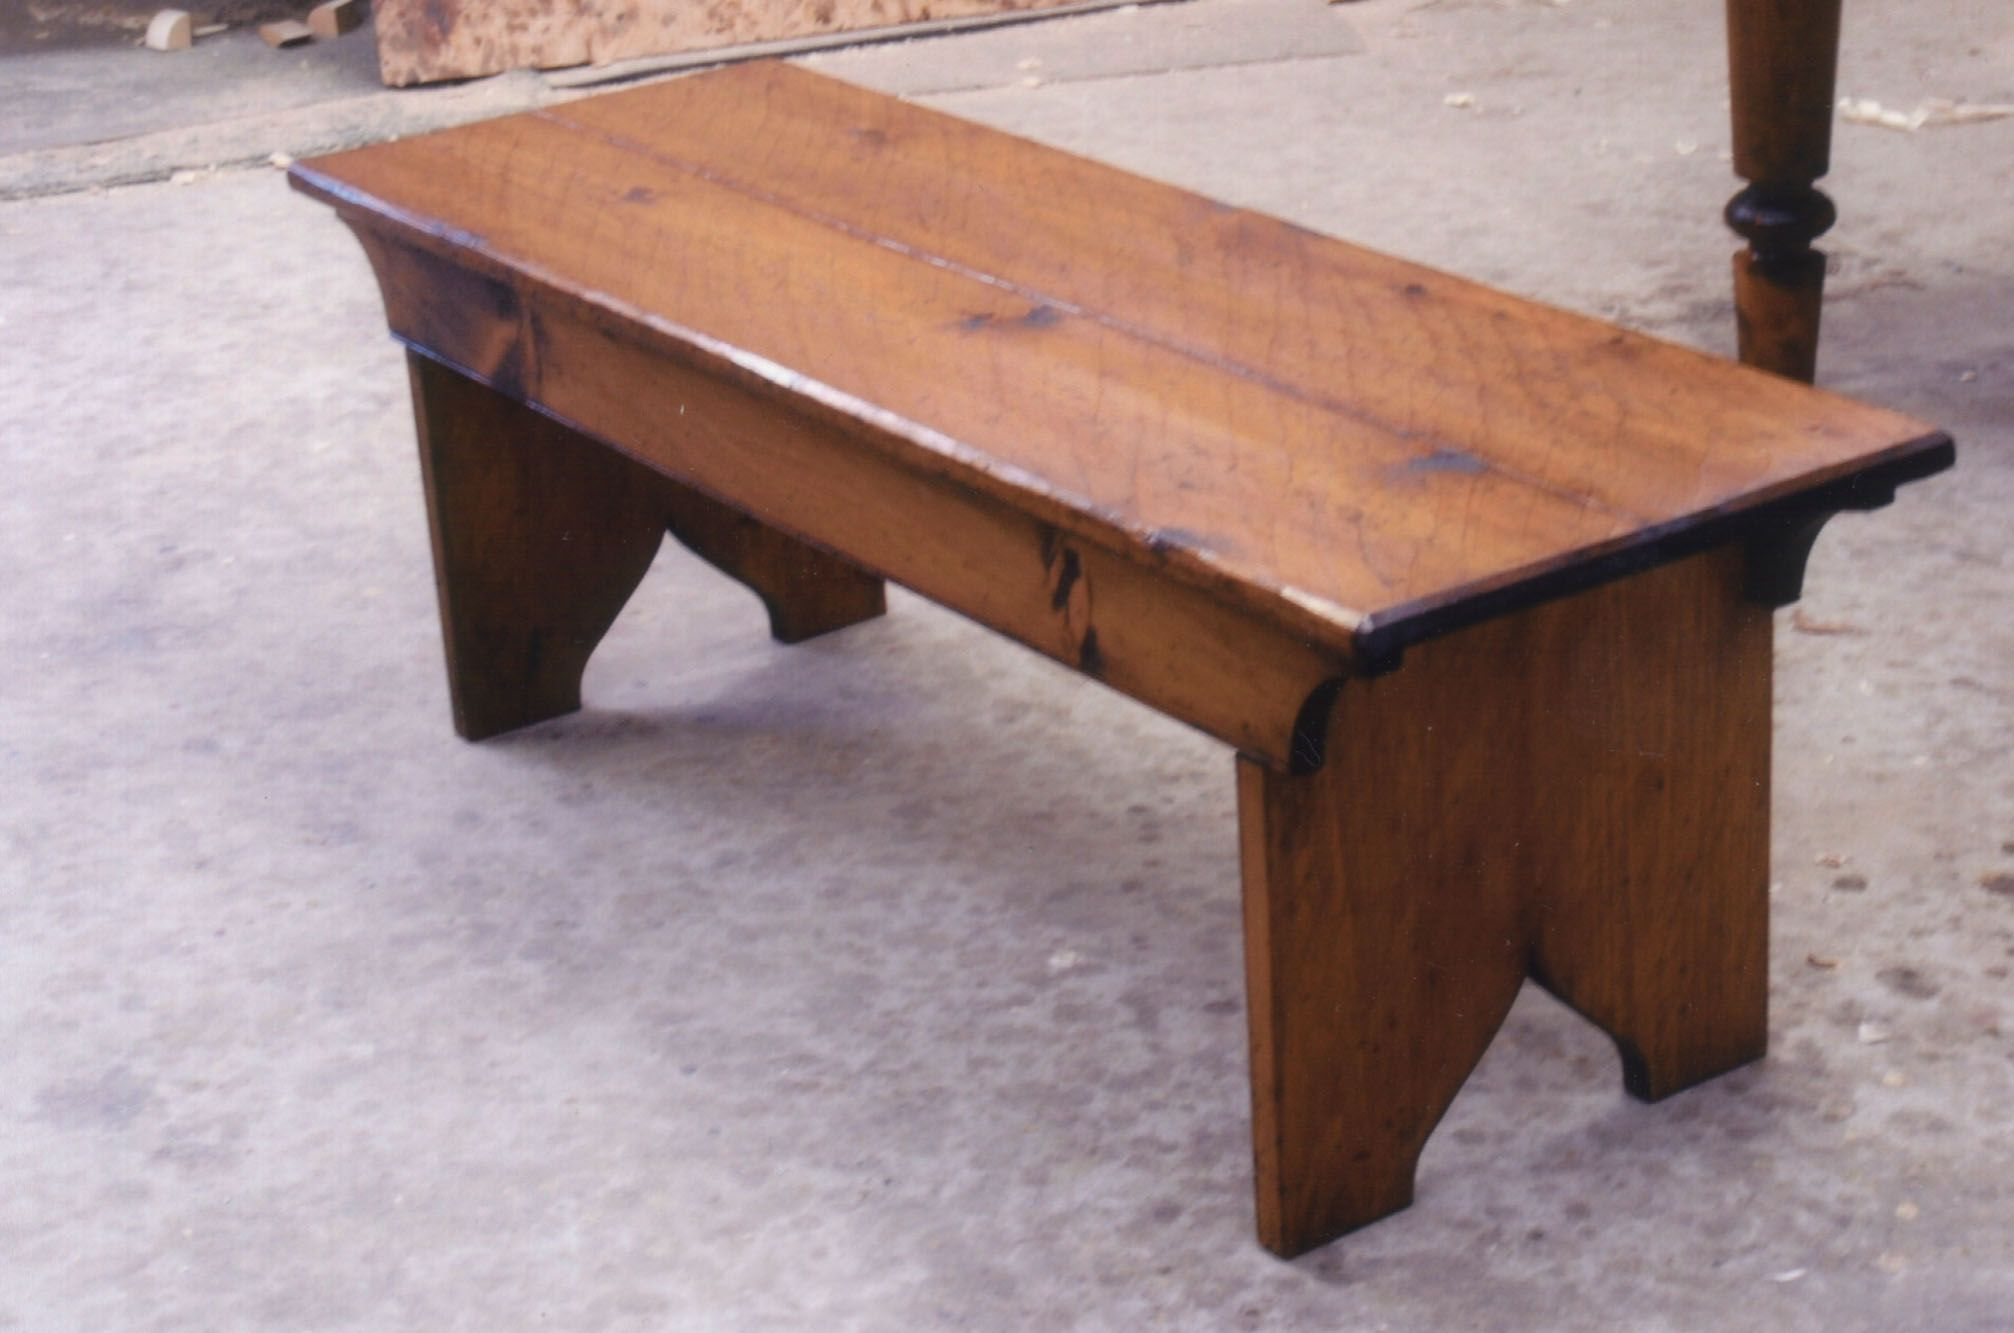 bench pictures | Pine Farmhouse Table Benches areavailable ...